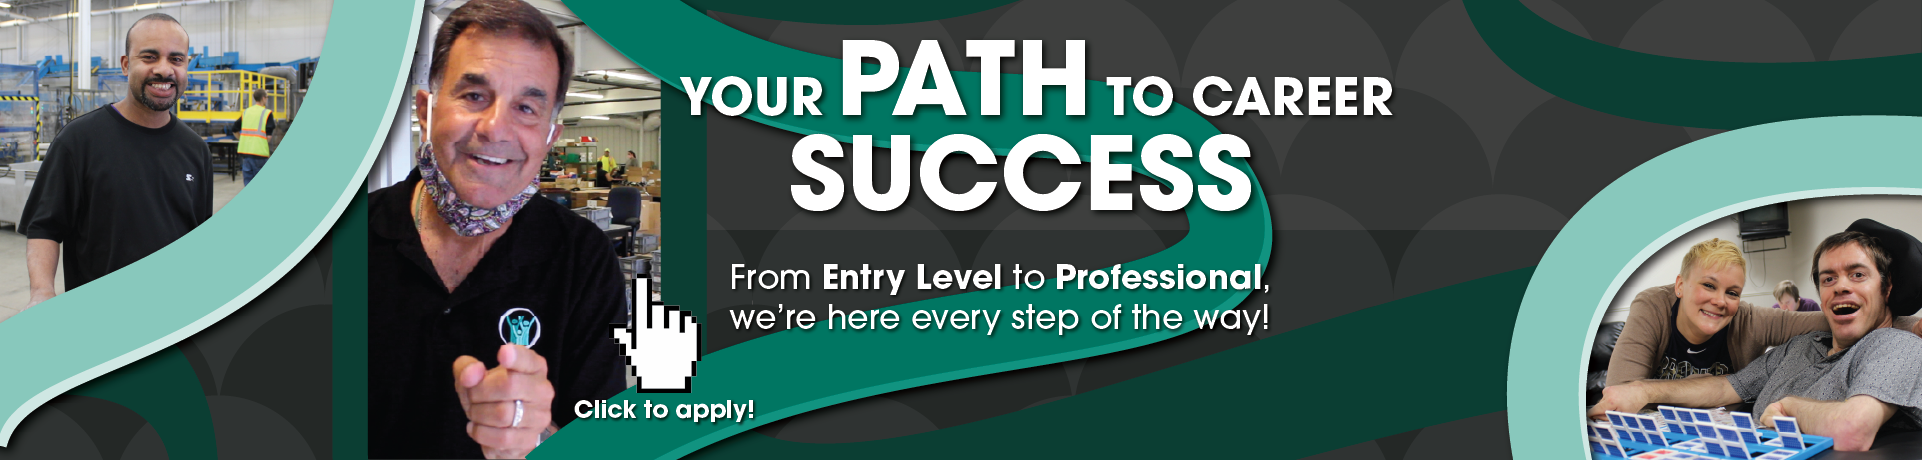 Path_to_Career_Success_Banner_v4